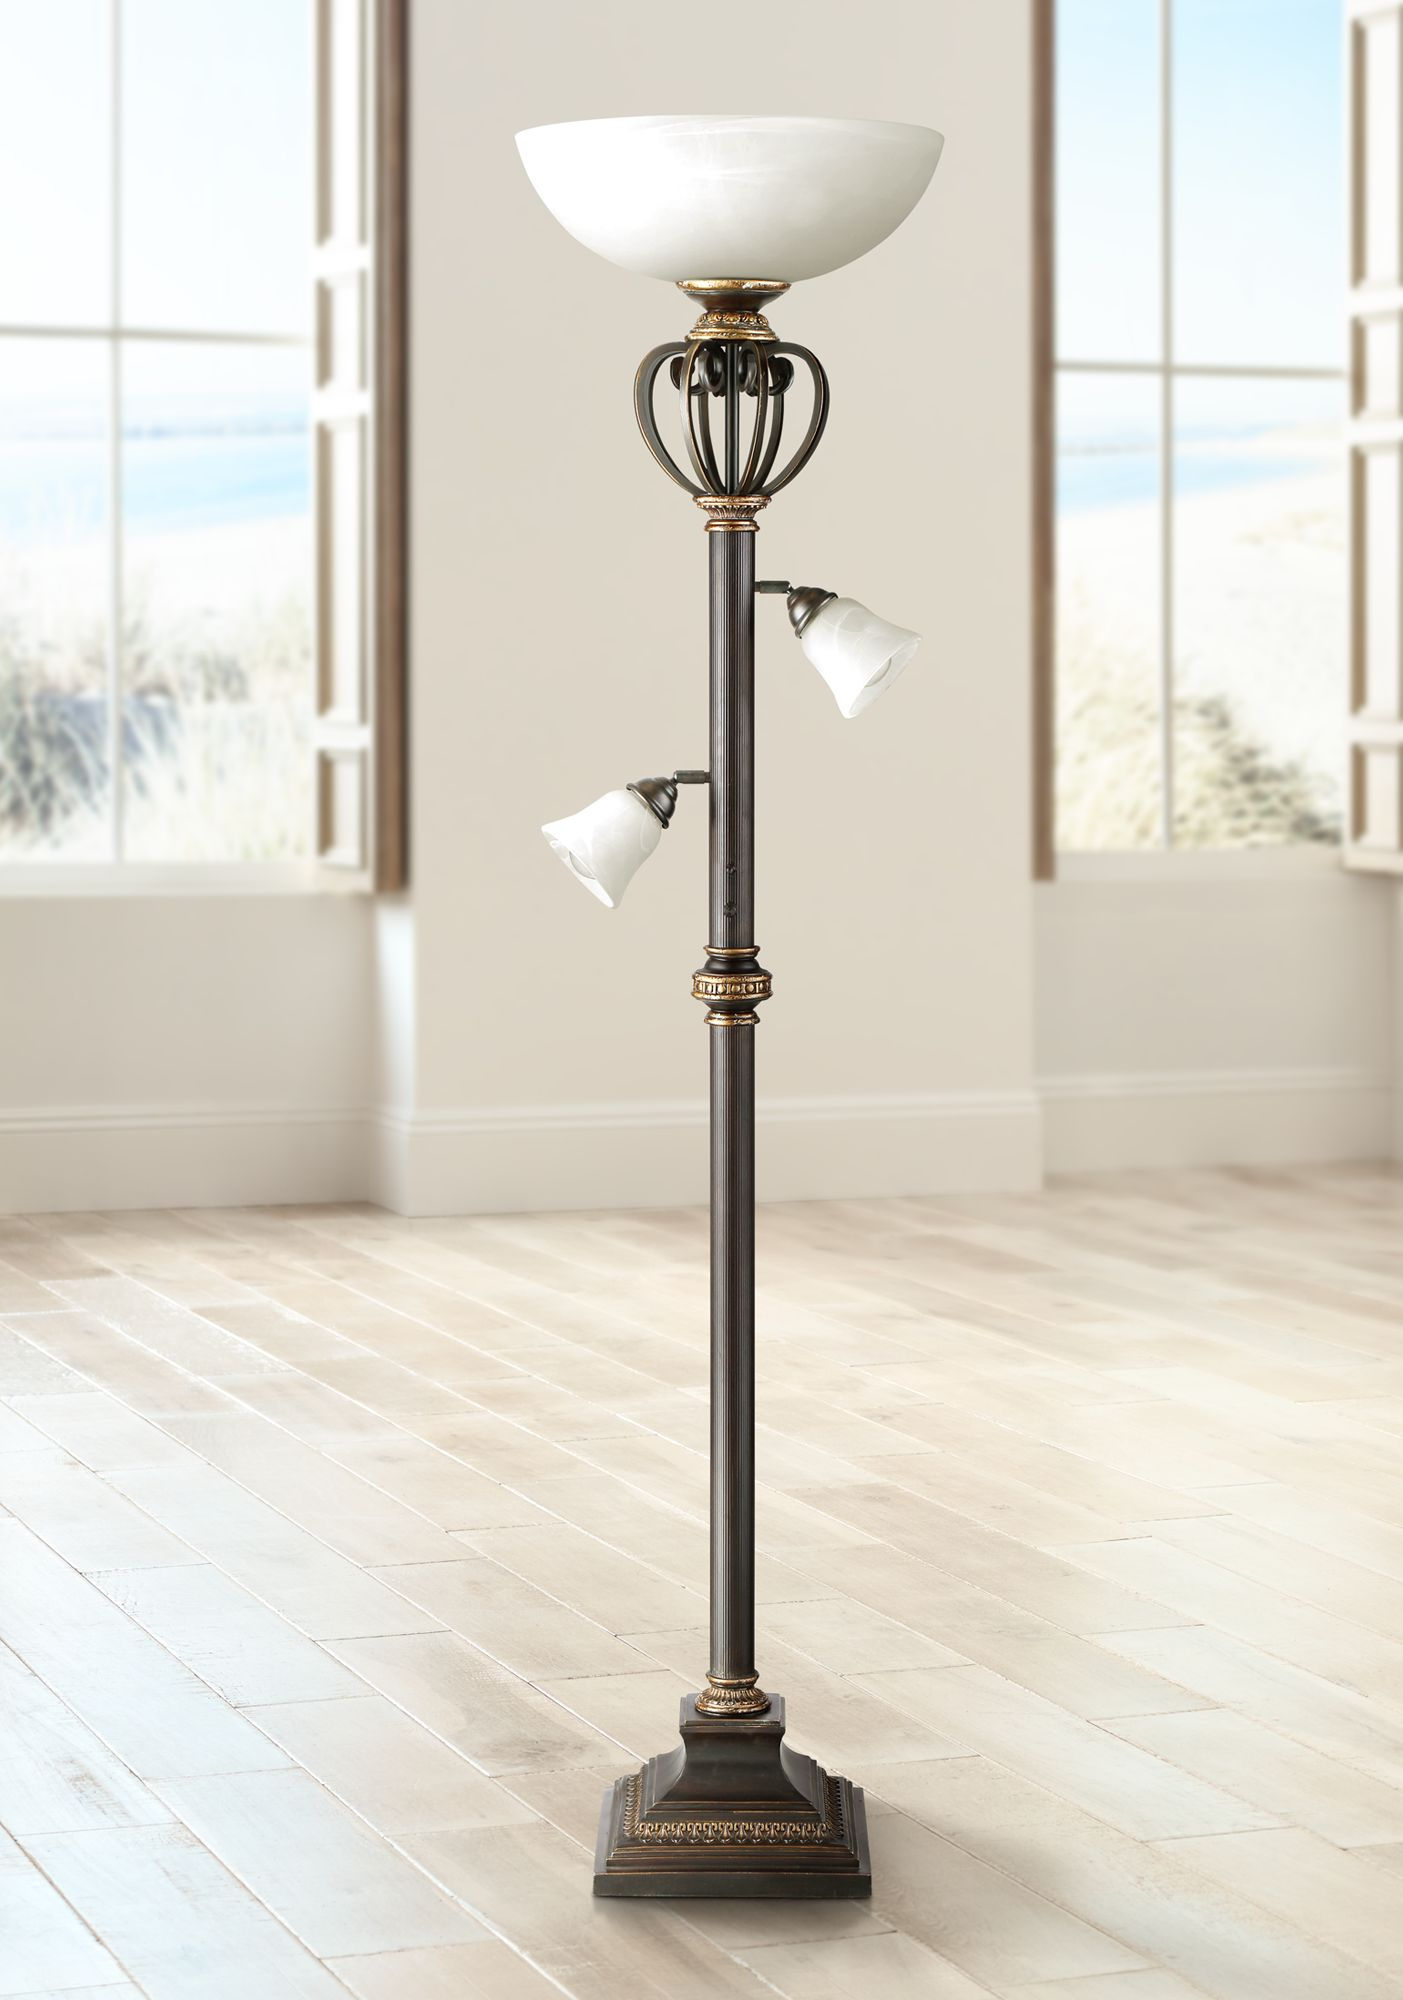 Warfeld Light Blaster™ Polished Brass Torchiere Floor Lamp